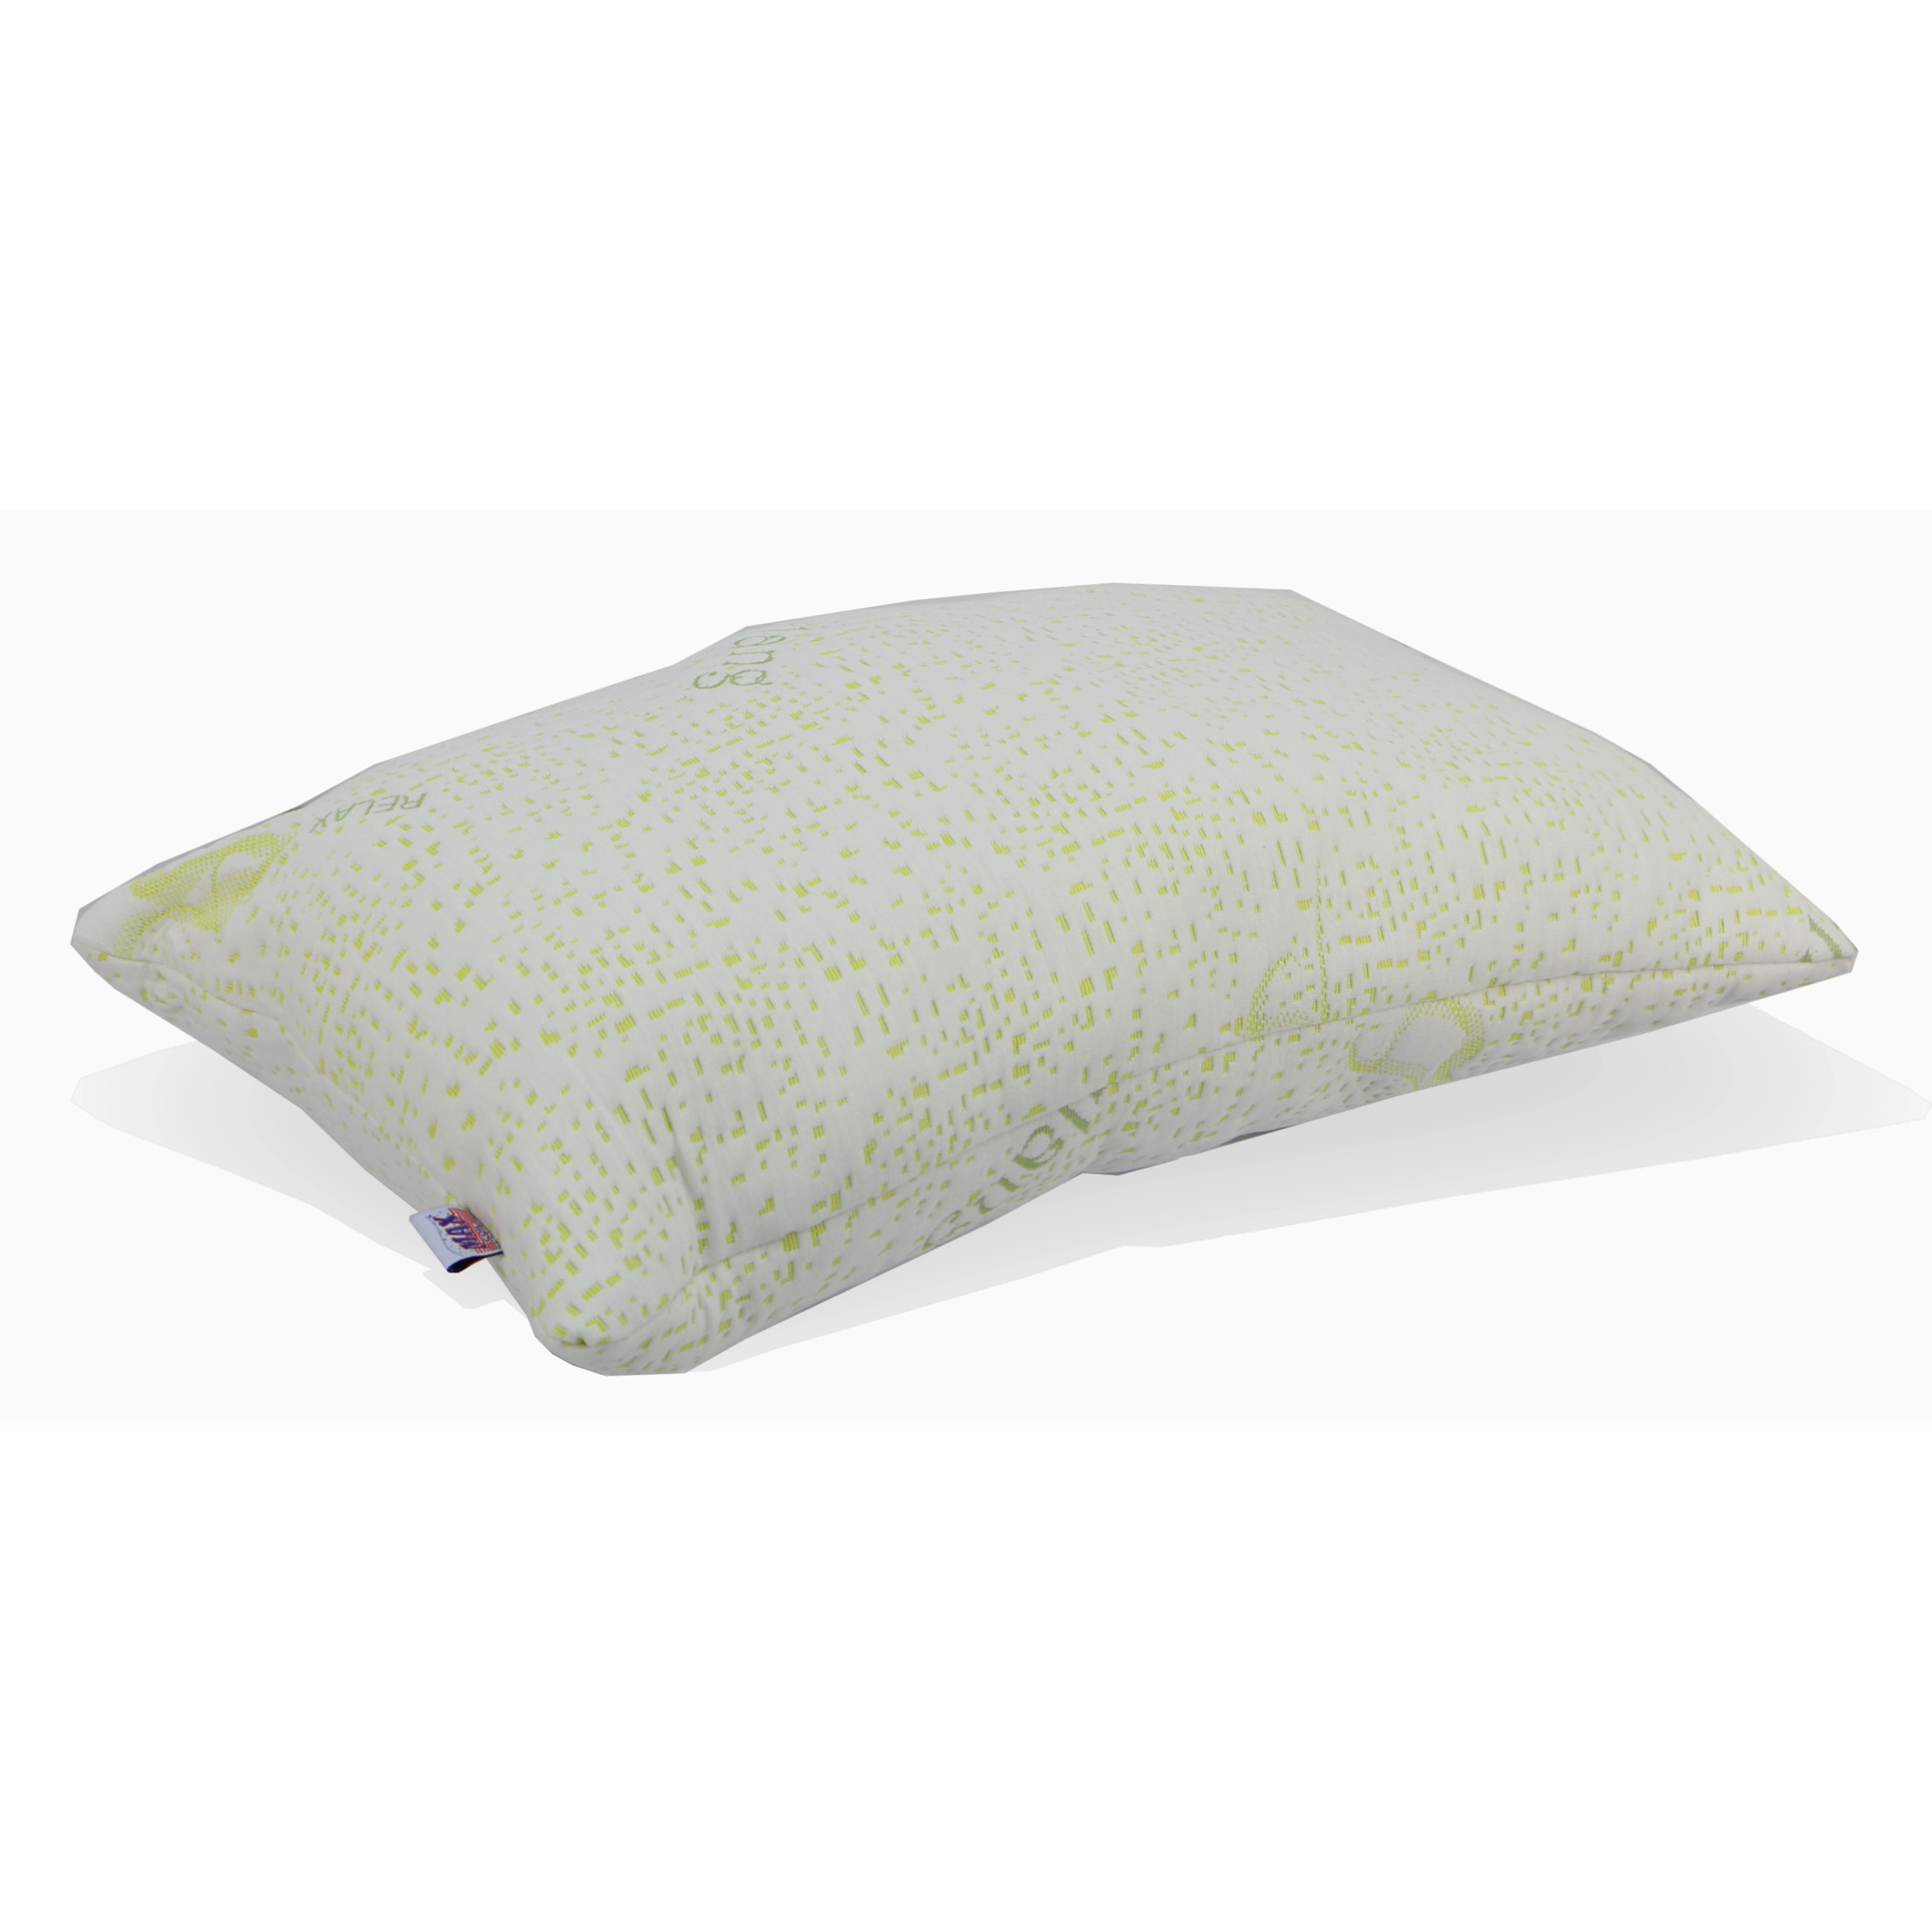 tww contour willow therapeutic foam pillows white memory products reveries hpct the pillow medium x ww piece